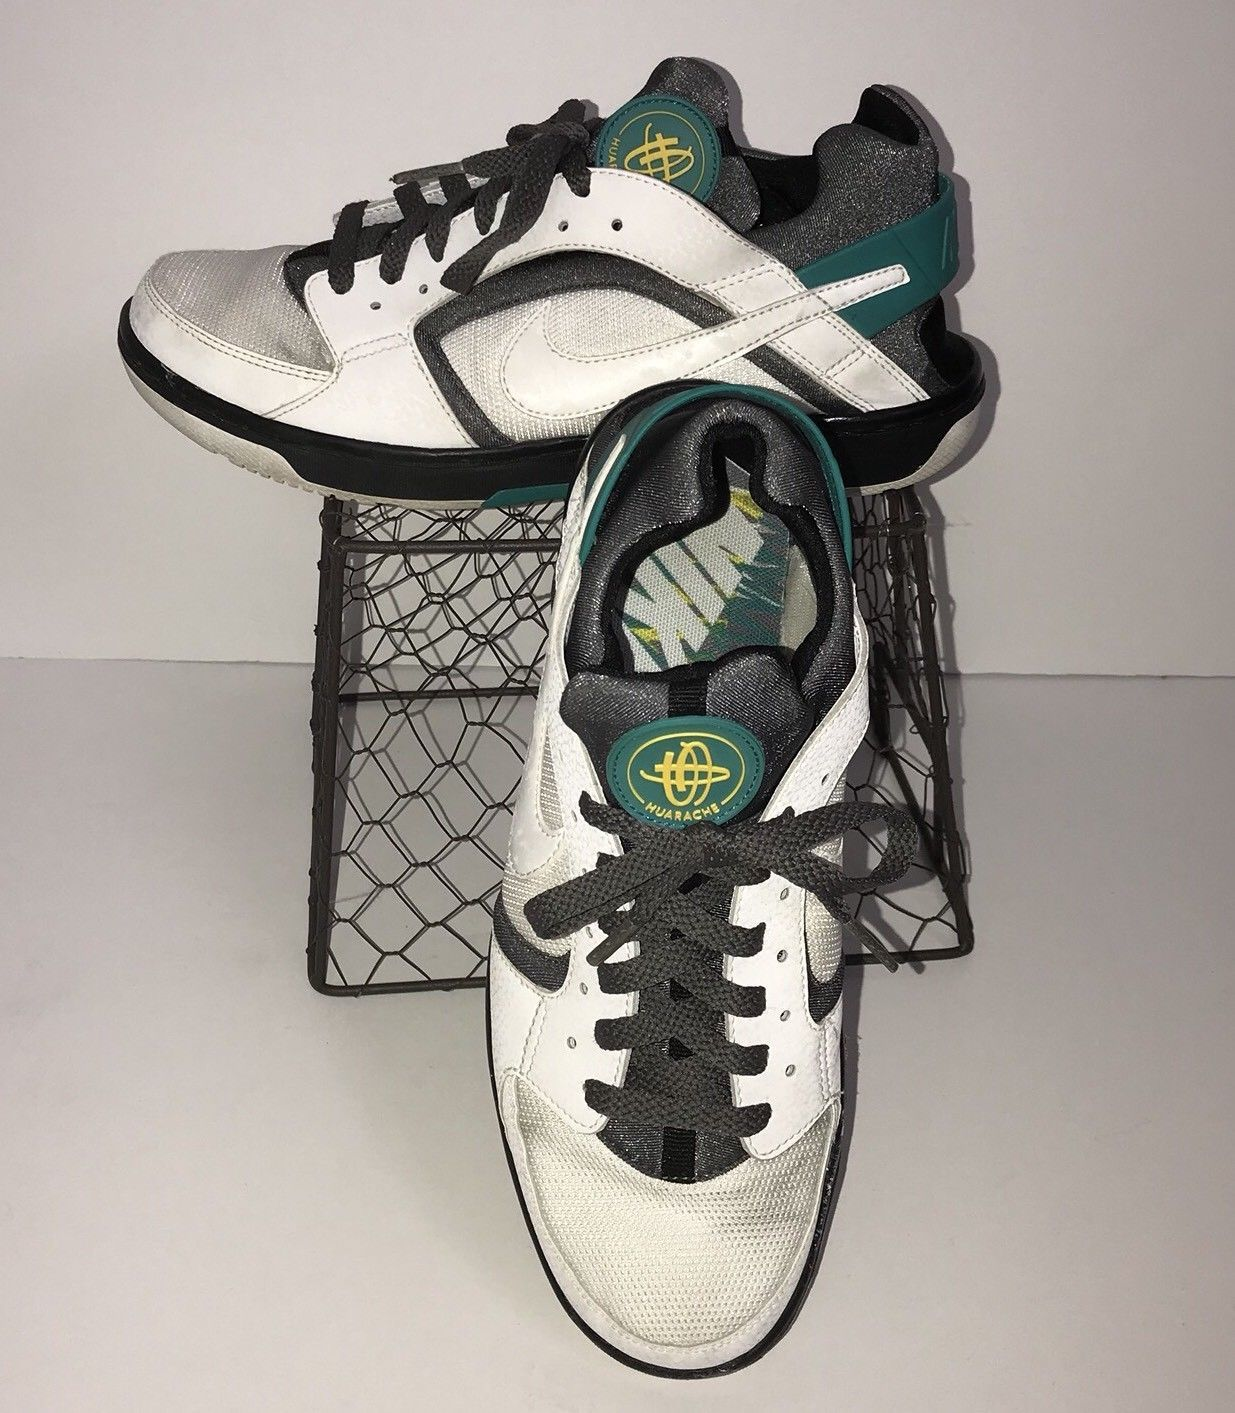 official photos ec9d6 39884 Women s Nike Huarache Running Shoes Size 9 and 50 similar items. 57